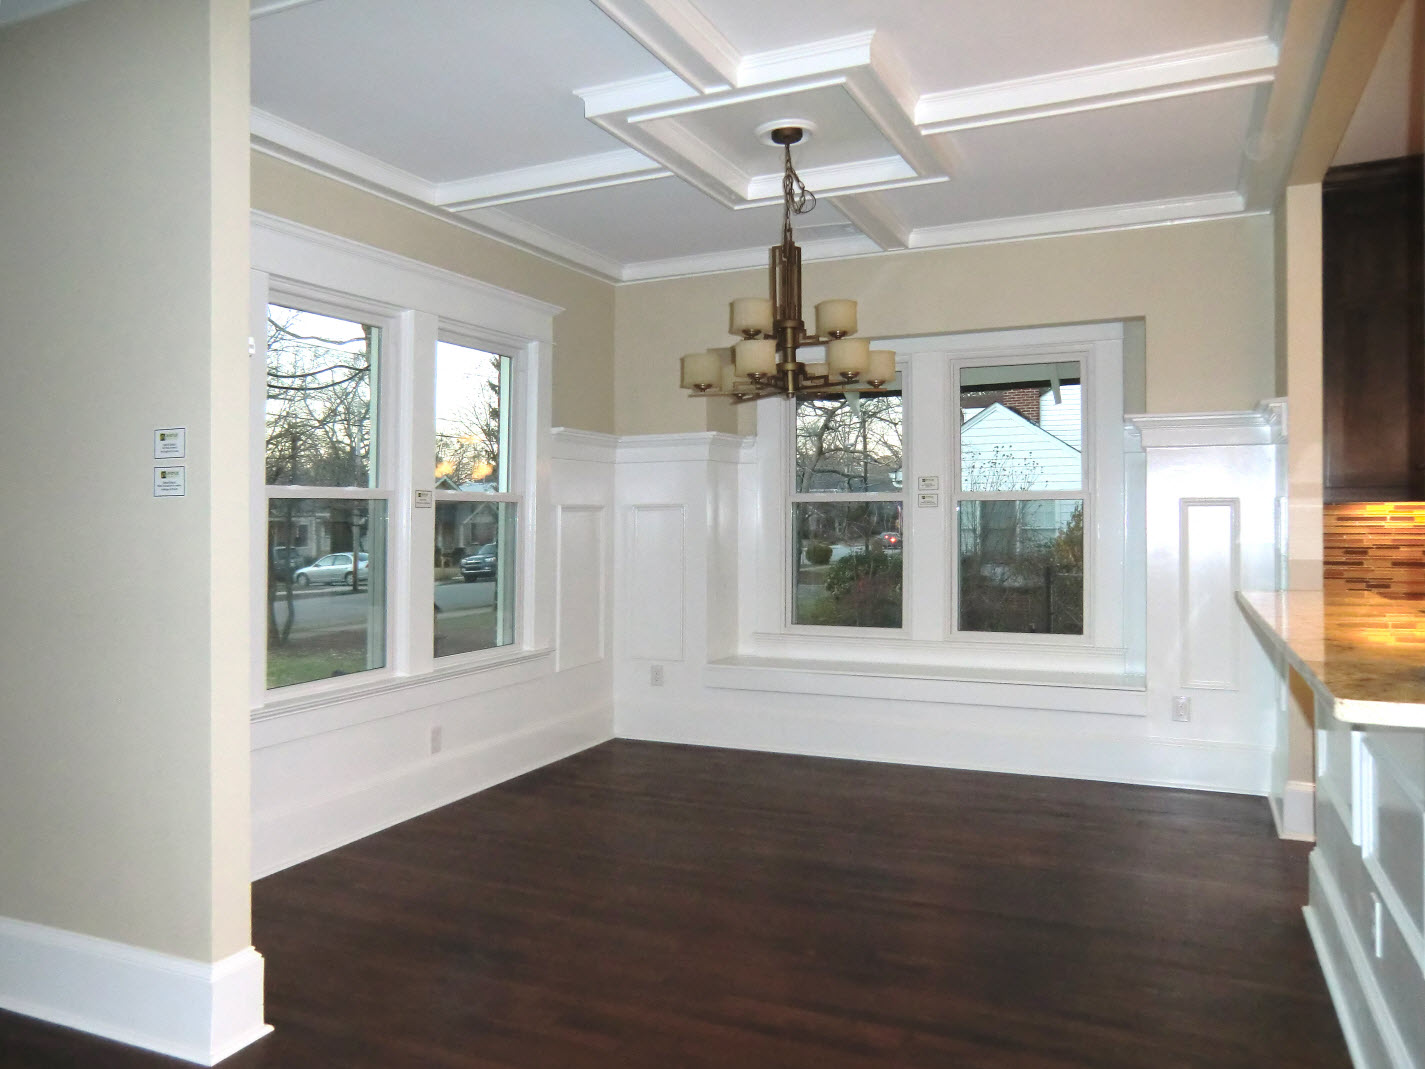 Genial Dining Room With Coffered Ceiling.